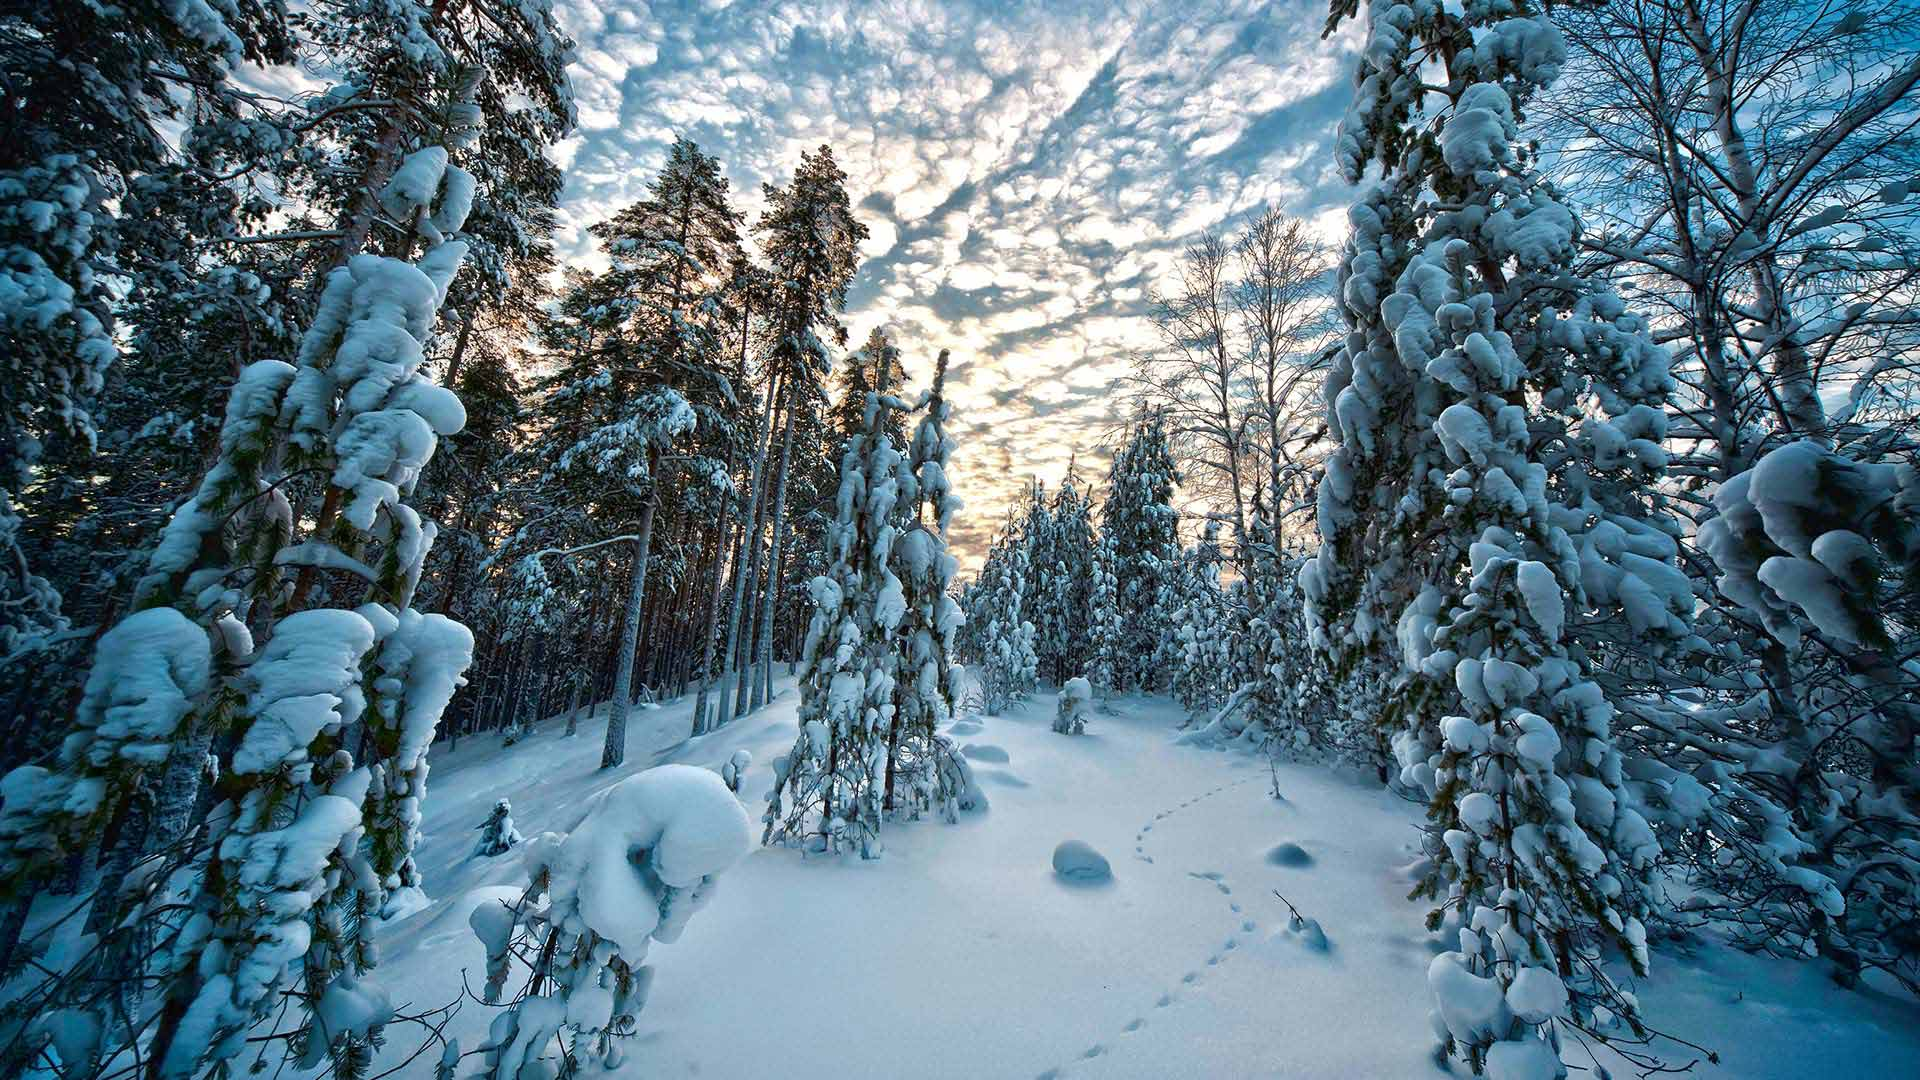 Day Trips Levi Finland Lapland Activities Amp Tours